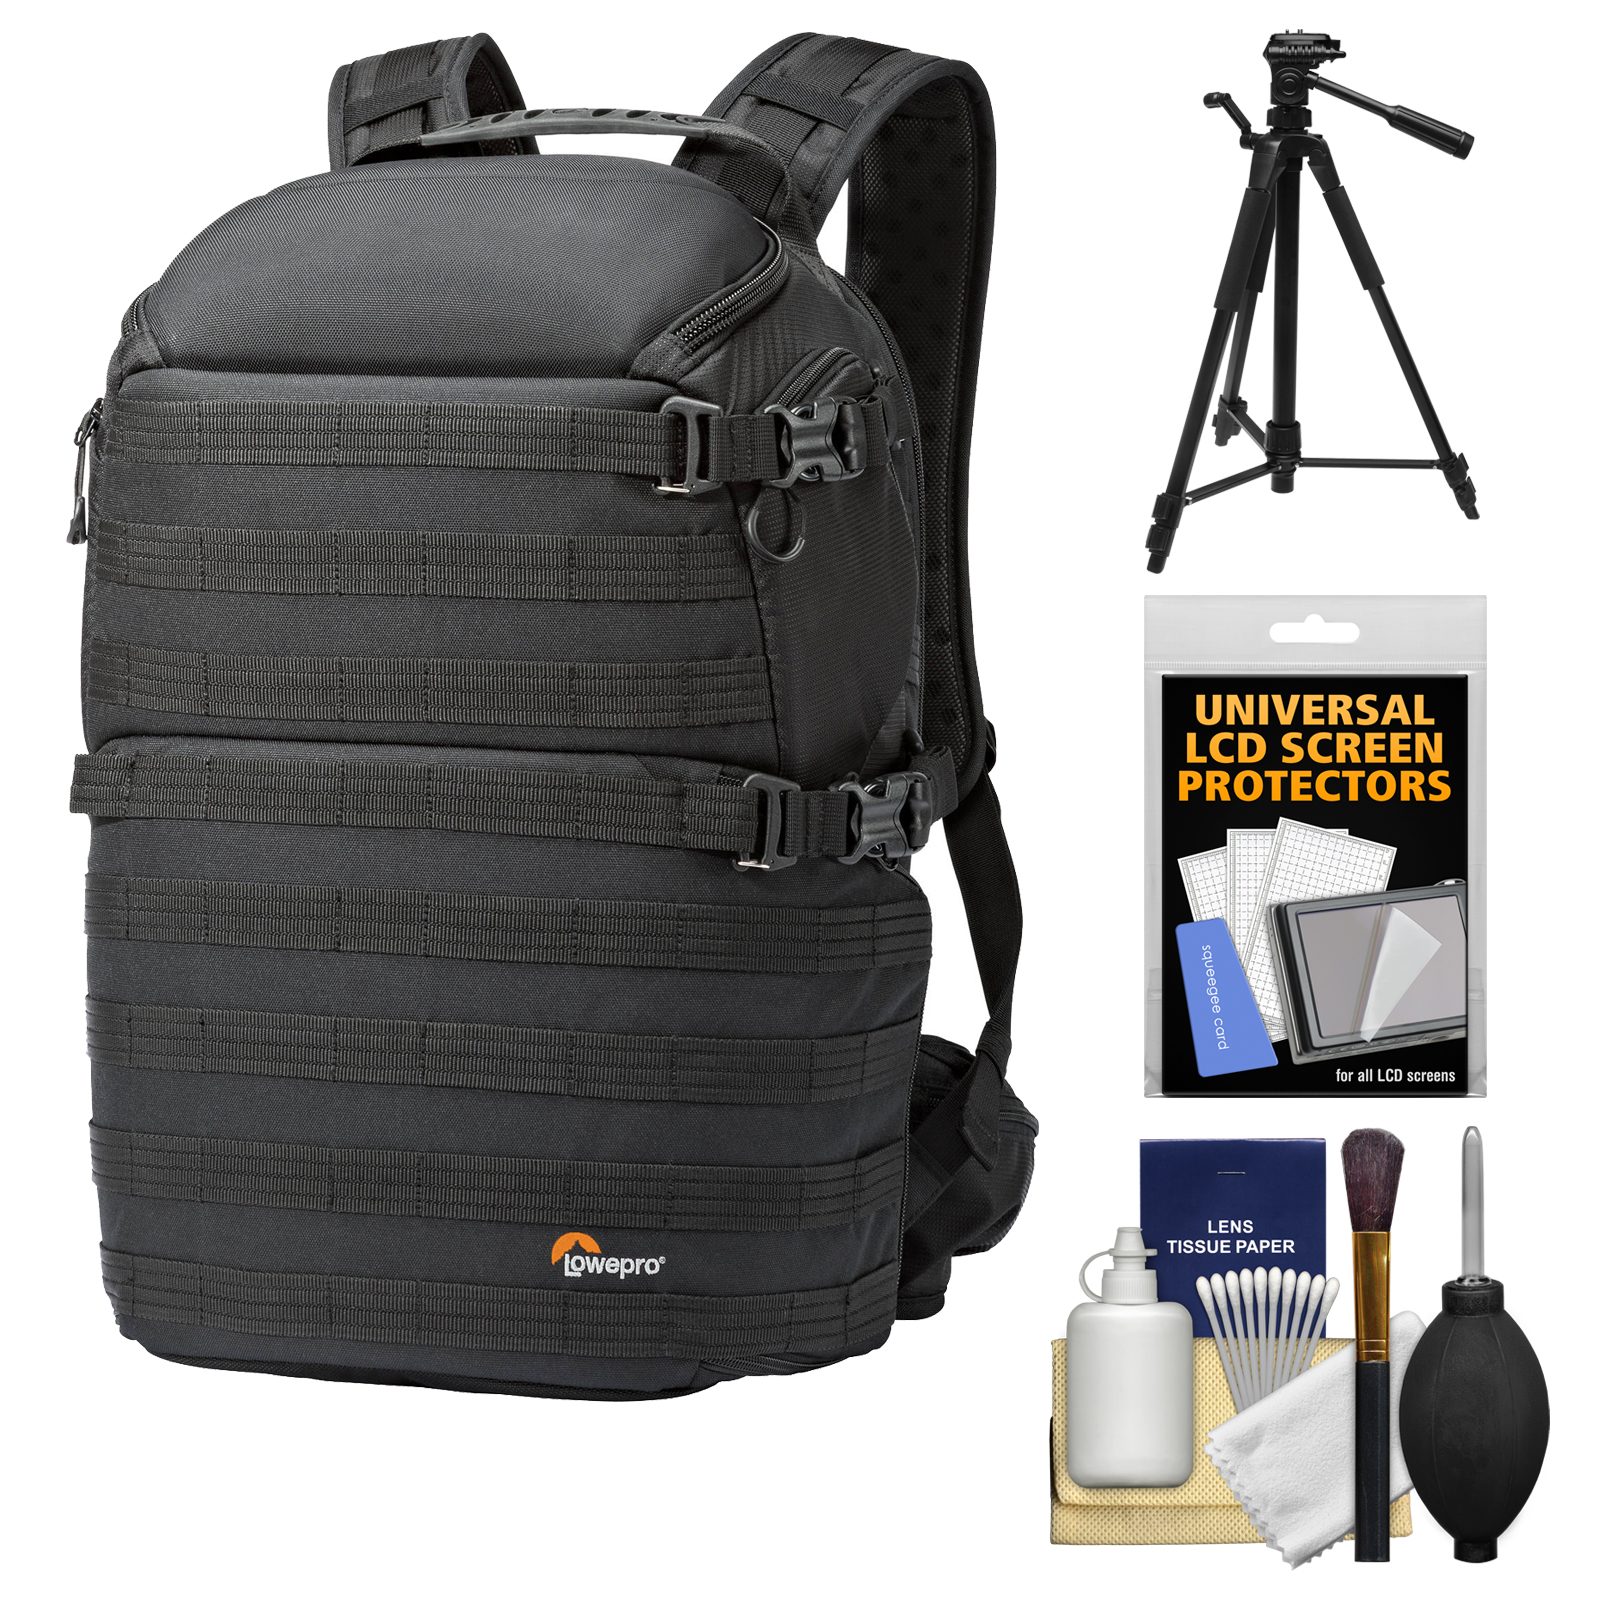 Lowepro Pro Tactic 450 AW Digital SLR Camera Backpack Case (Black) with Tripod + Accessory Kit by Lowepro